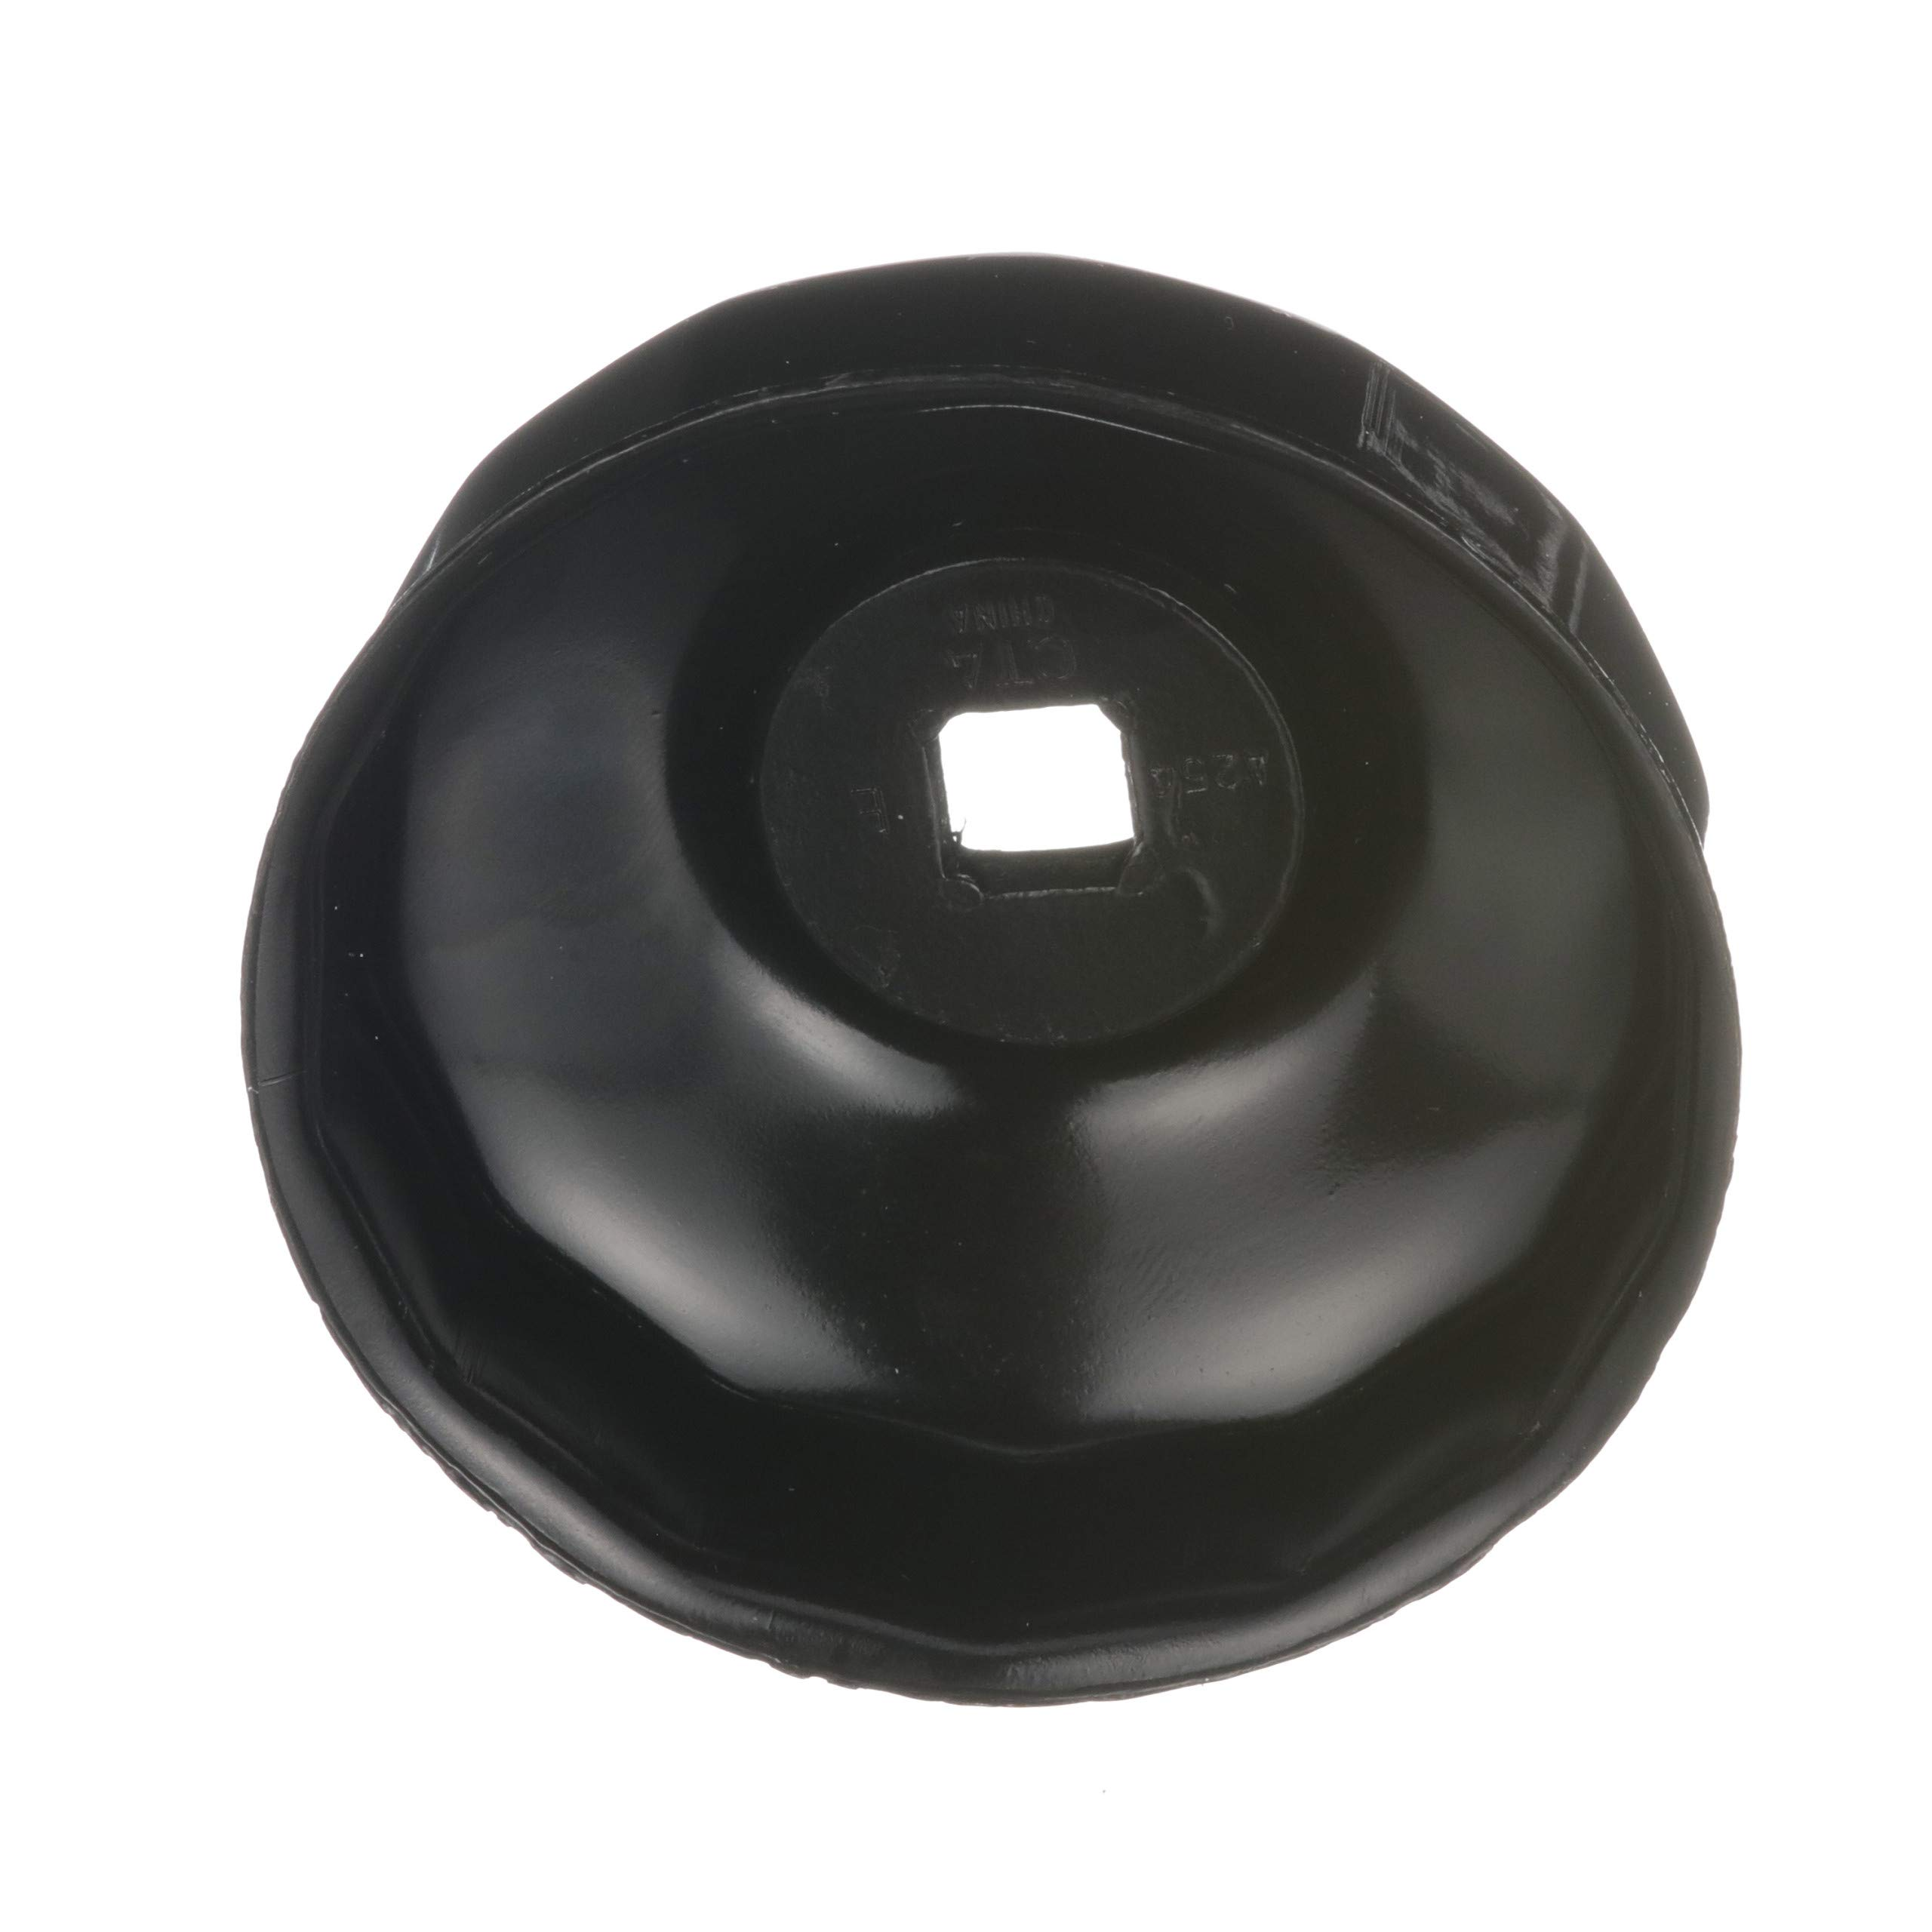 CTA Tools A254 Cap-Type Oil Filter Wrench, 73-Millimeter